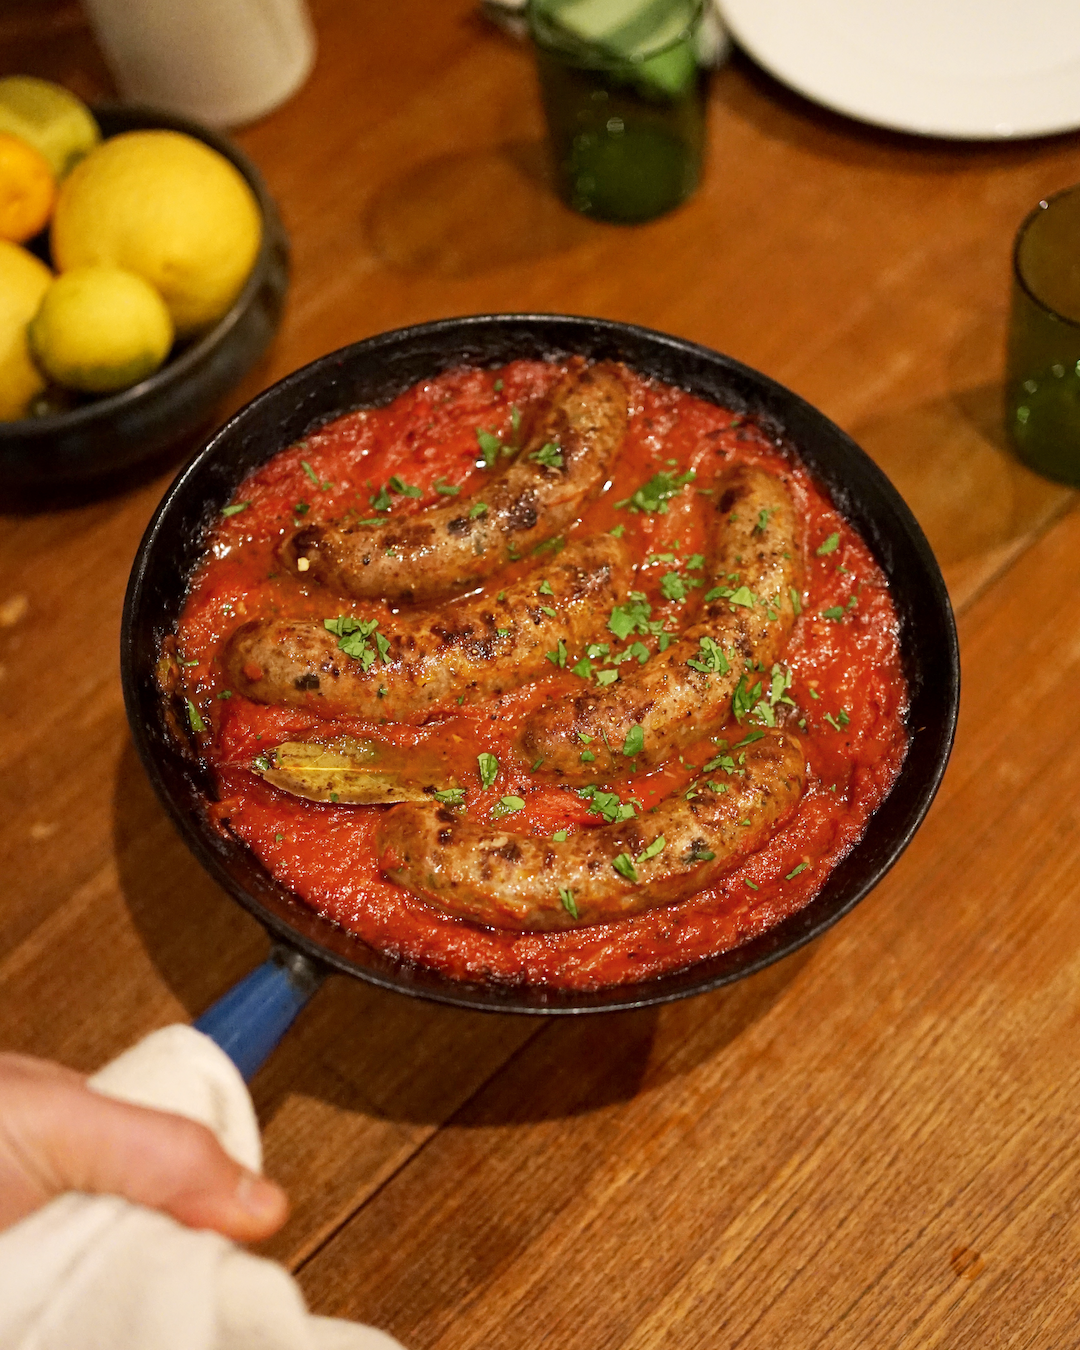 Baked Italian Sausages with Tomato